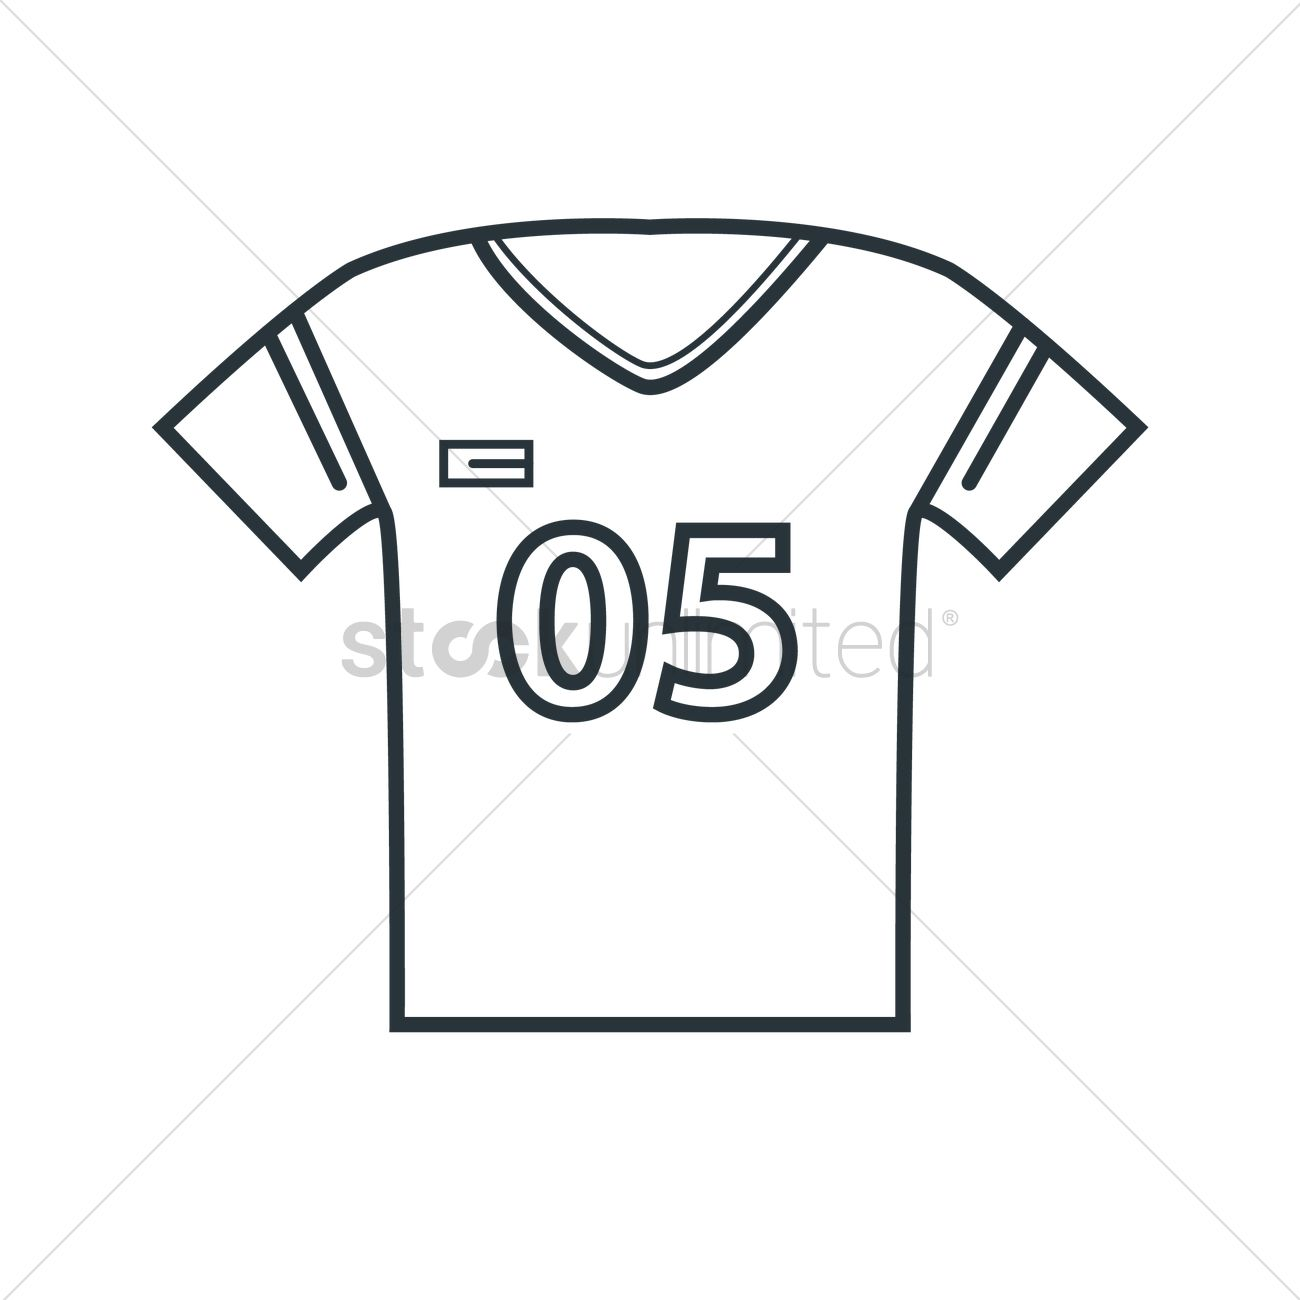 football jersey vector image 1493162 stockunlimited rh stockunlimited com football jersey clipart images football uniform clipart